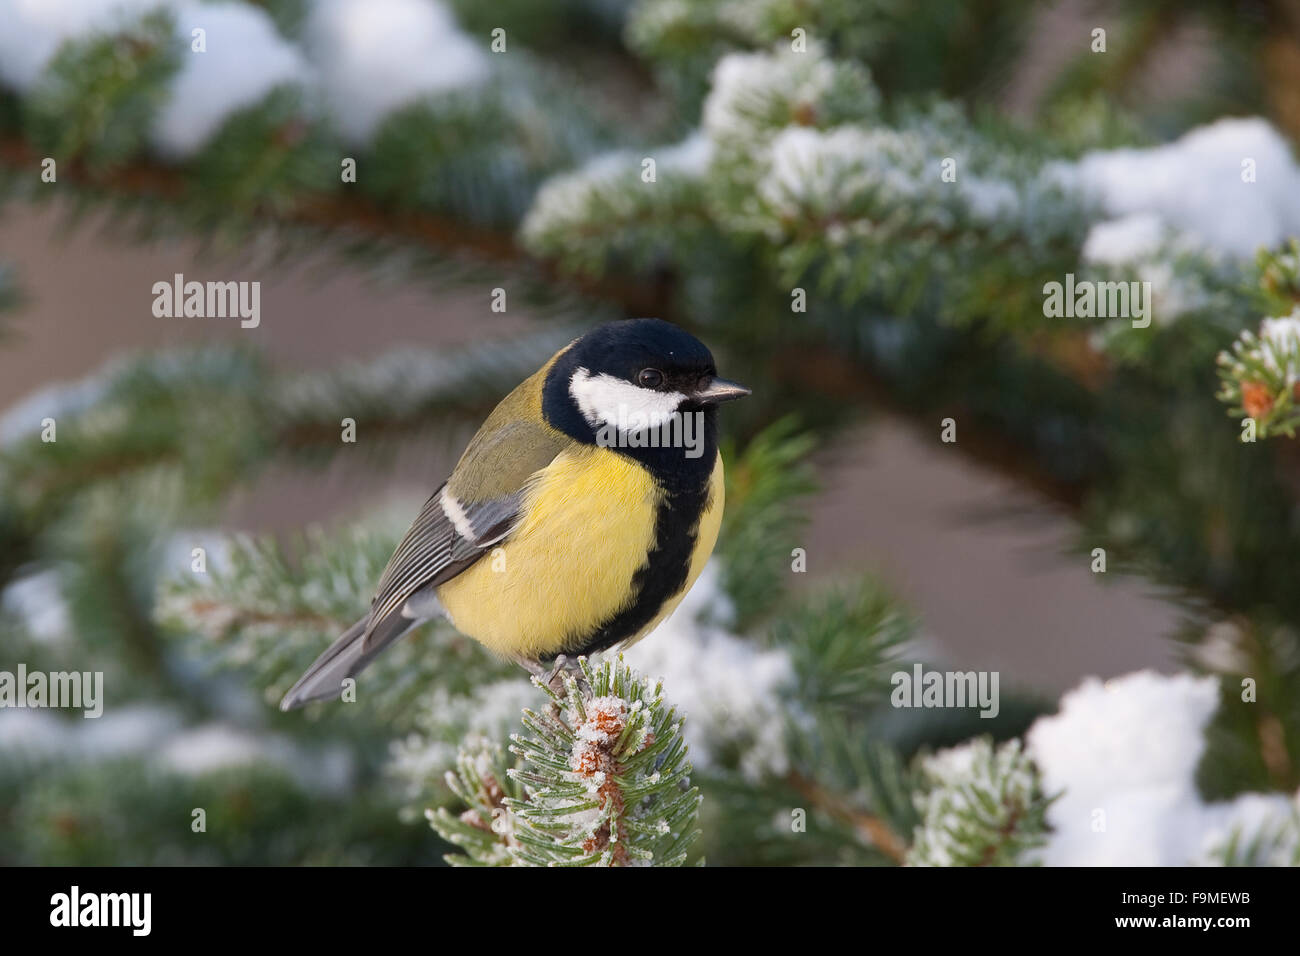 Kohlmeise Winter Great Tit Snow Winter Kohlmeise Kohl Meise Winter Schnee Stock